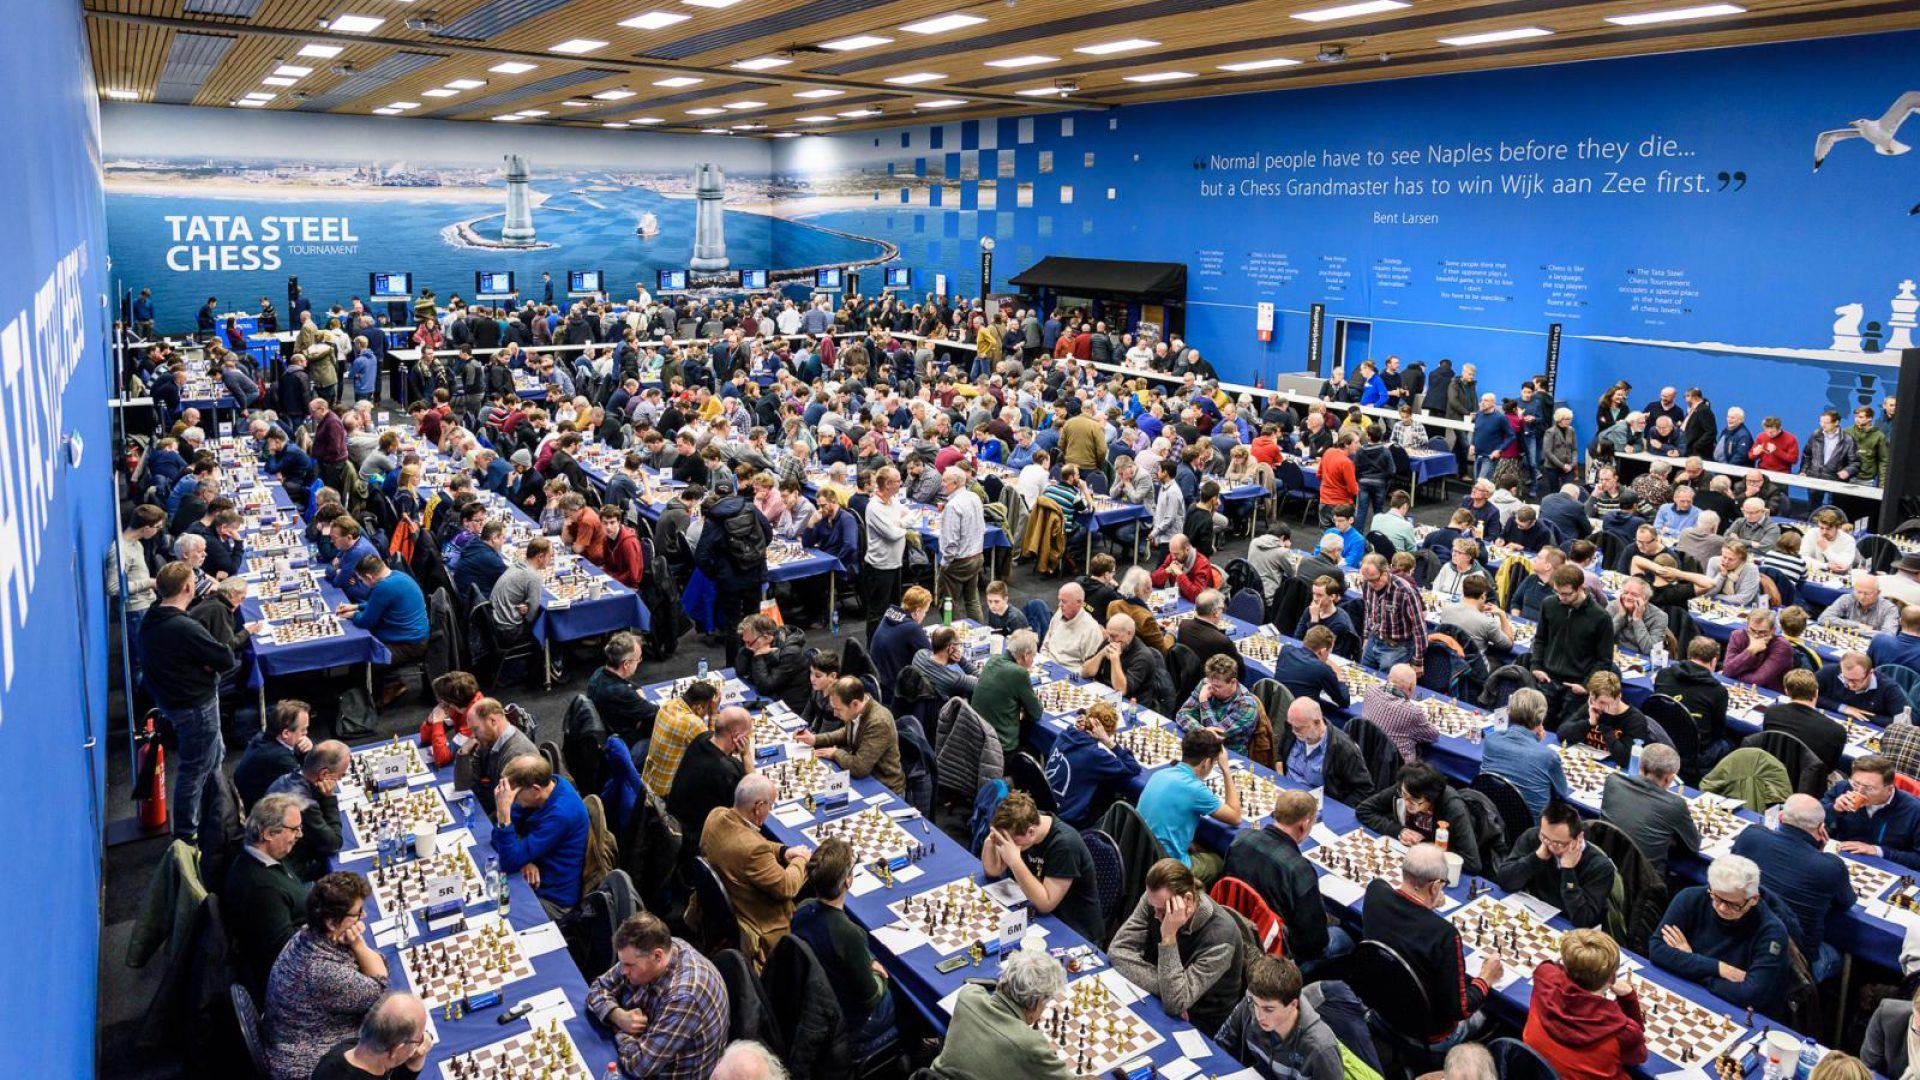 Tata Steel Chess Tournament odds